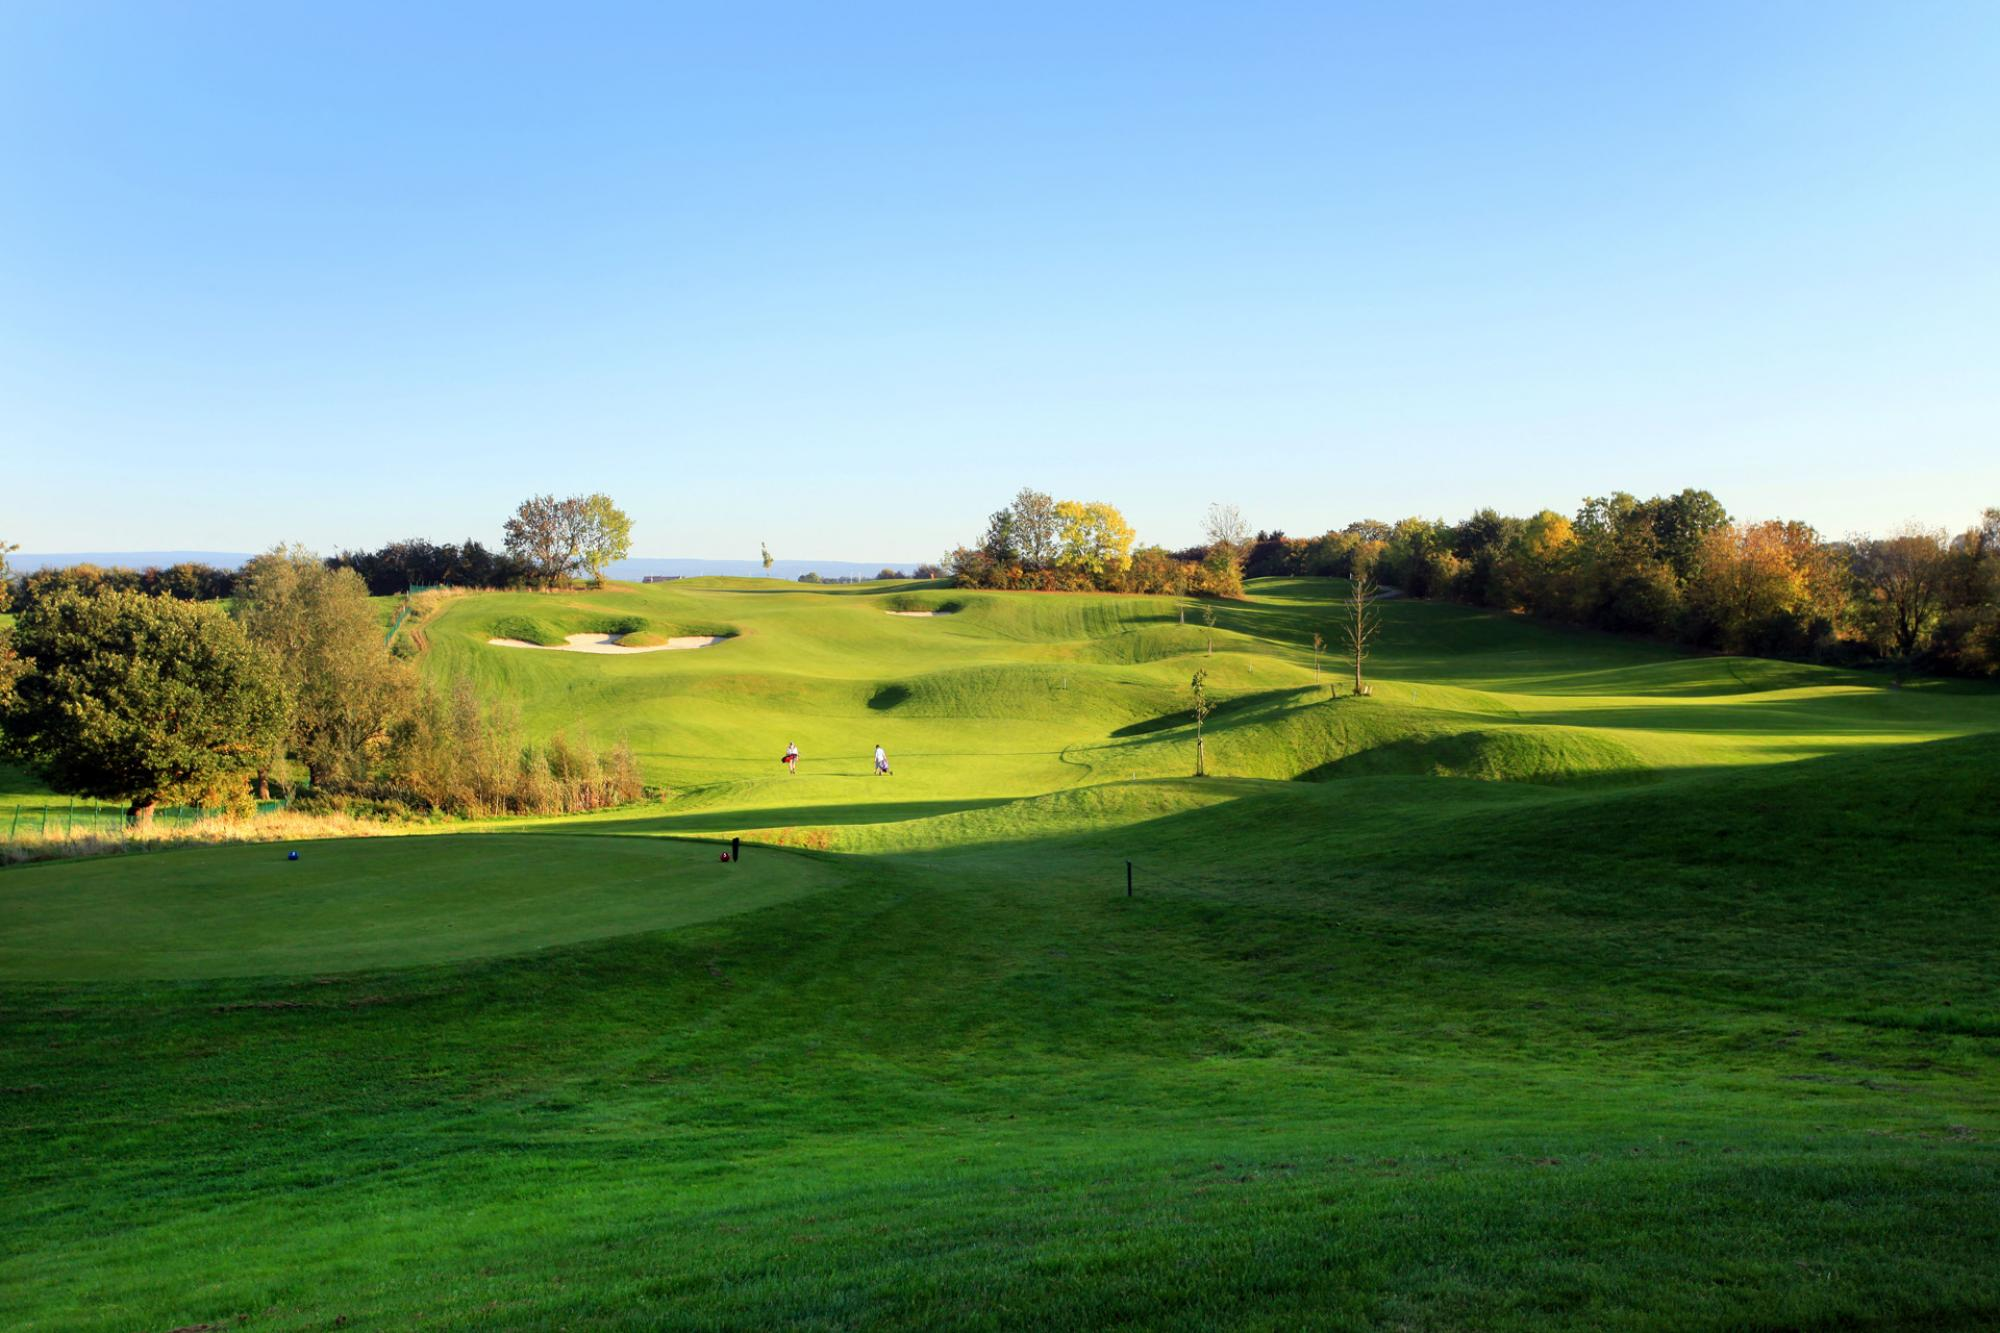 The Golf  Country Club Henri-Chapelle's picturesque golf course in incredible Rest of Belgium.